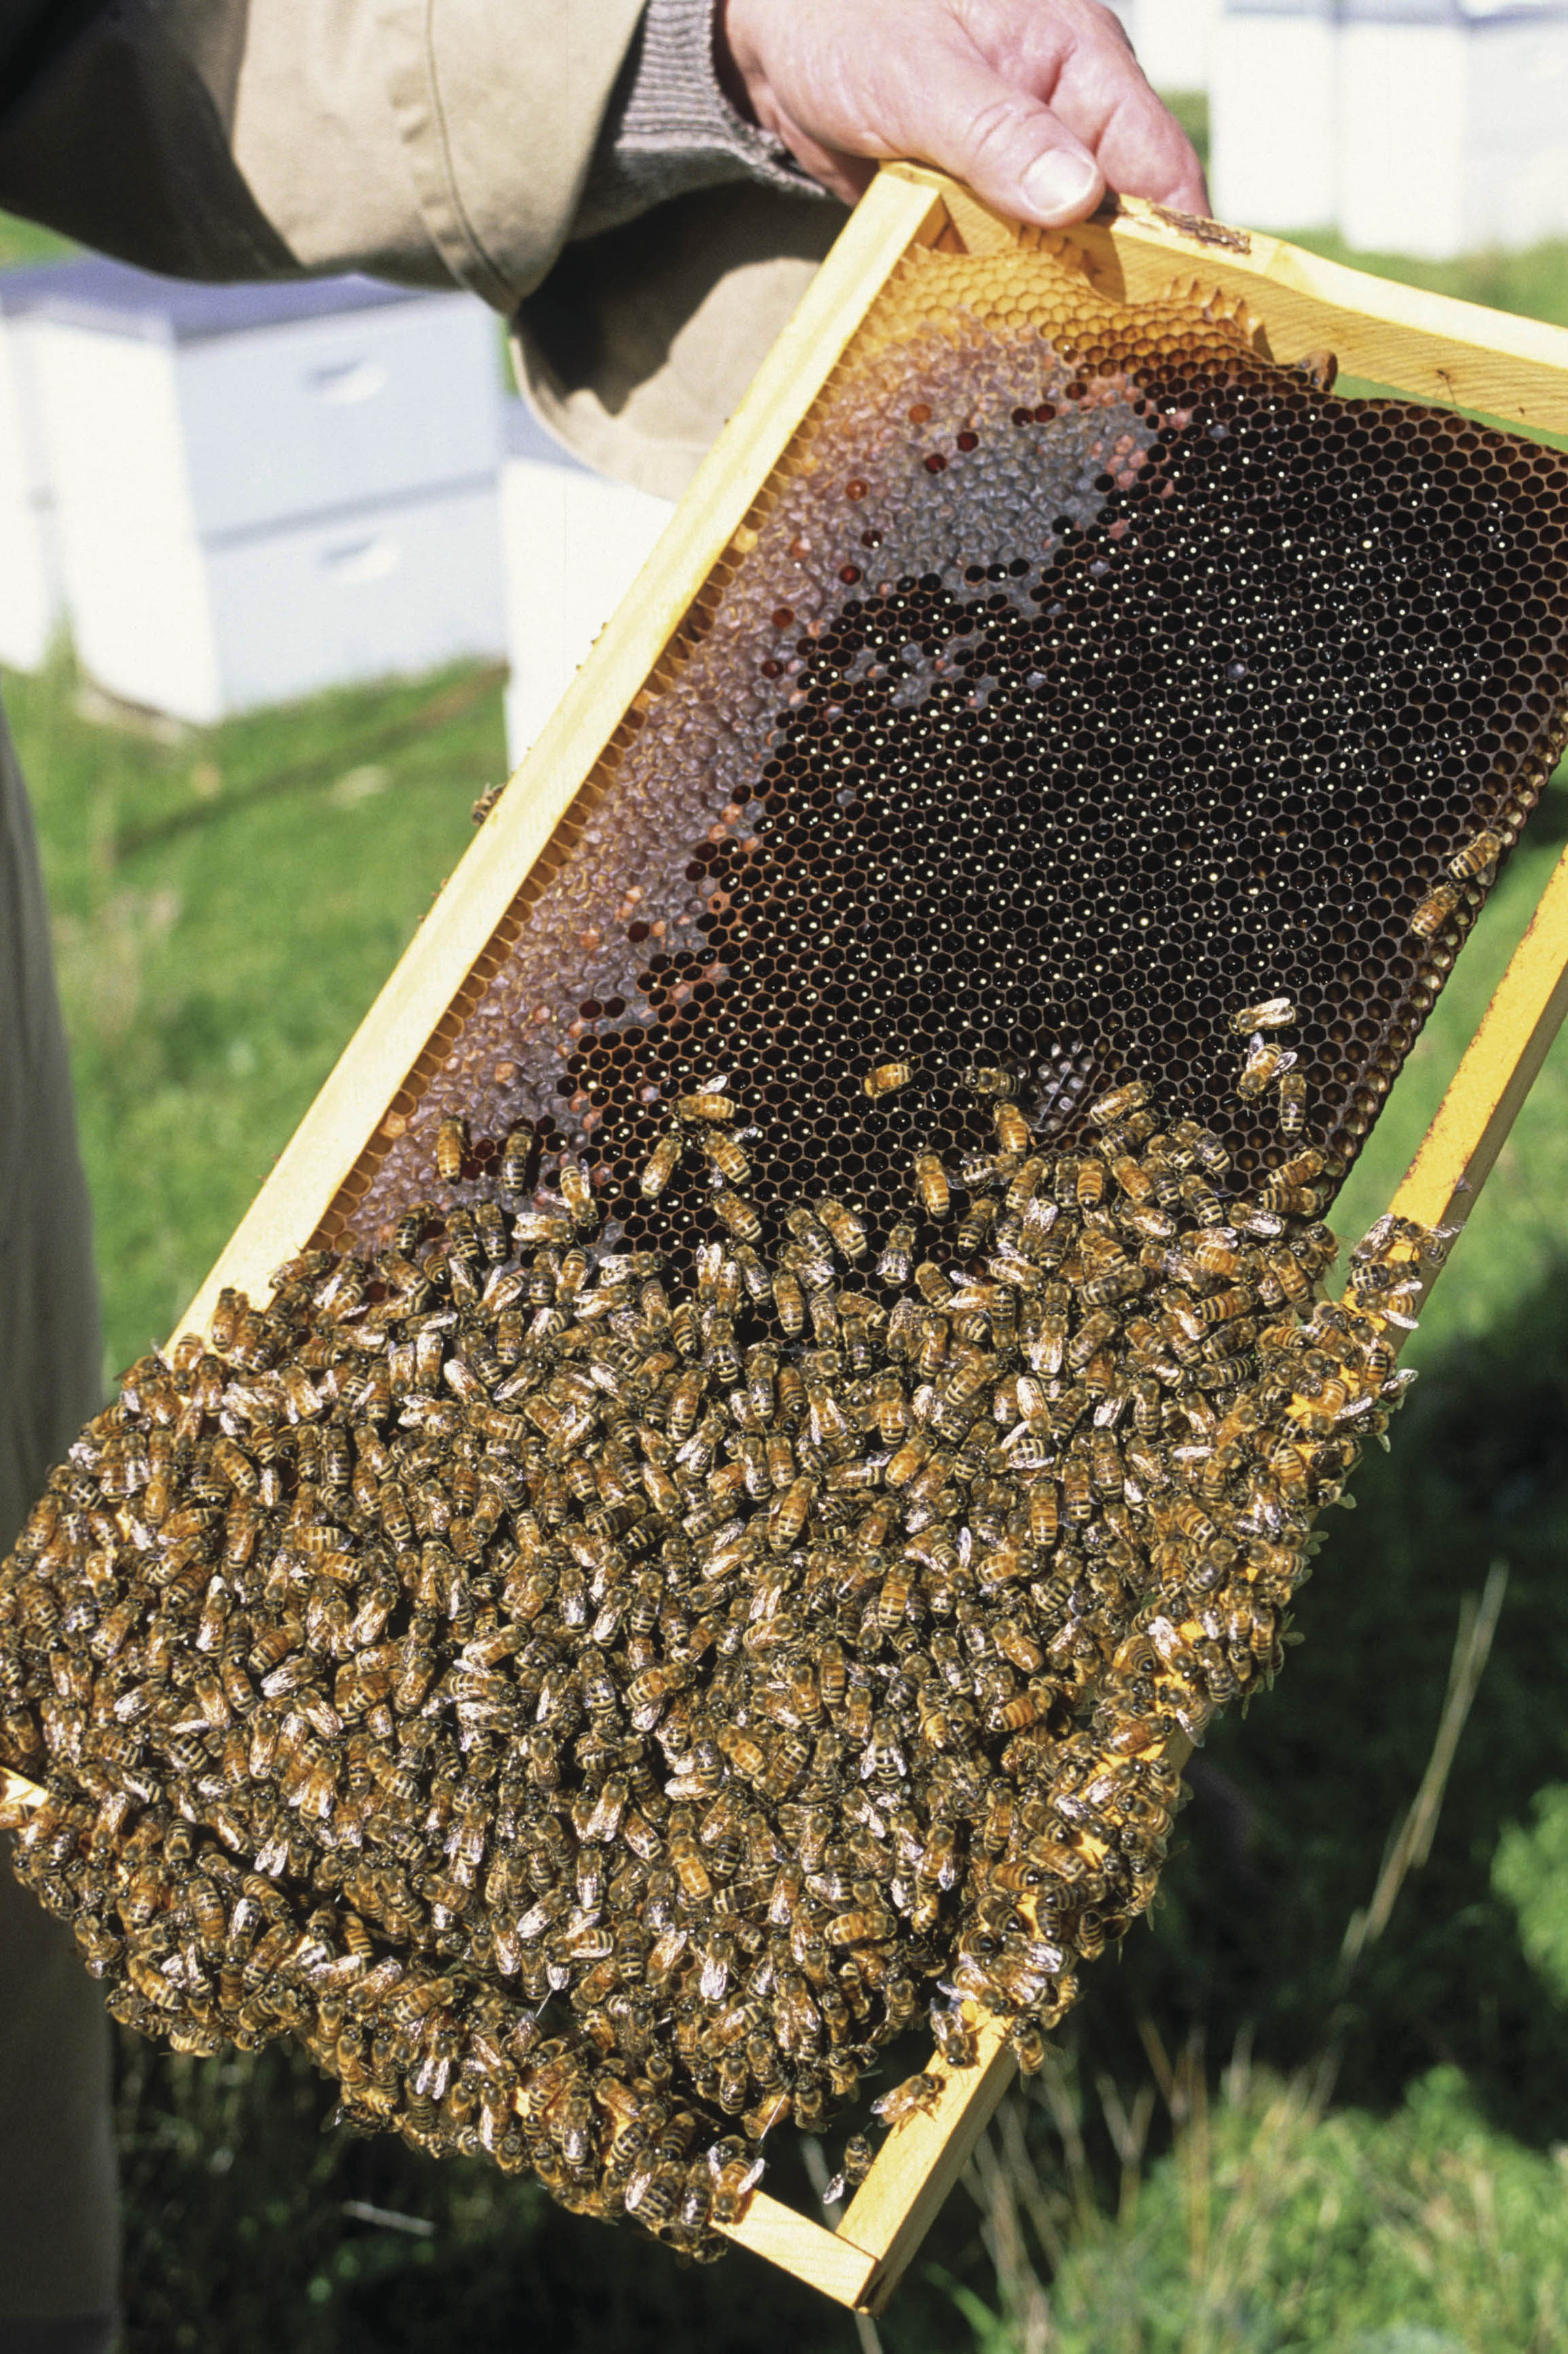 bees and honey on a frame